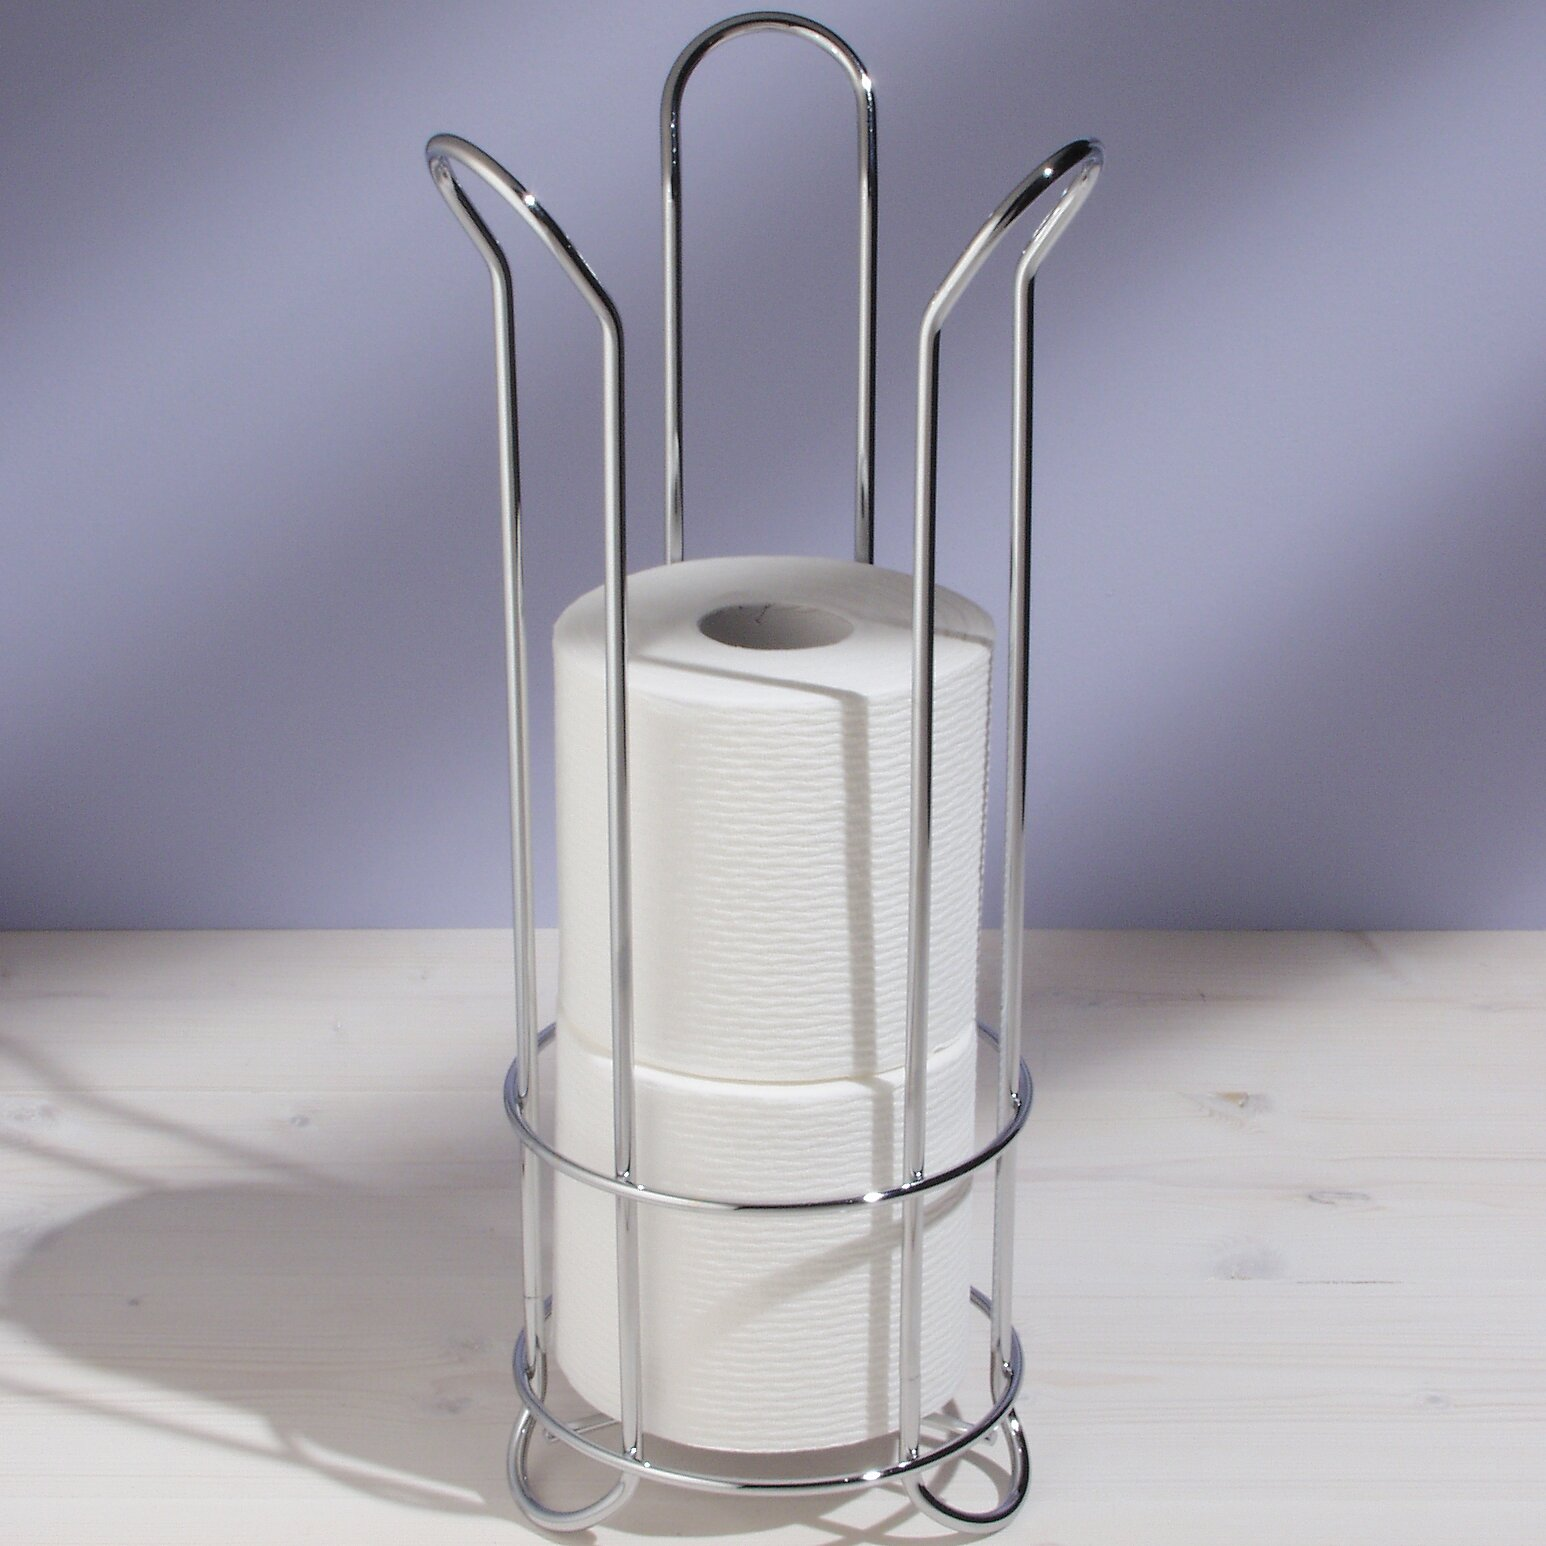 Interdesign free standing tulip toilet paper holder Kids toilet paper holder